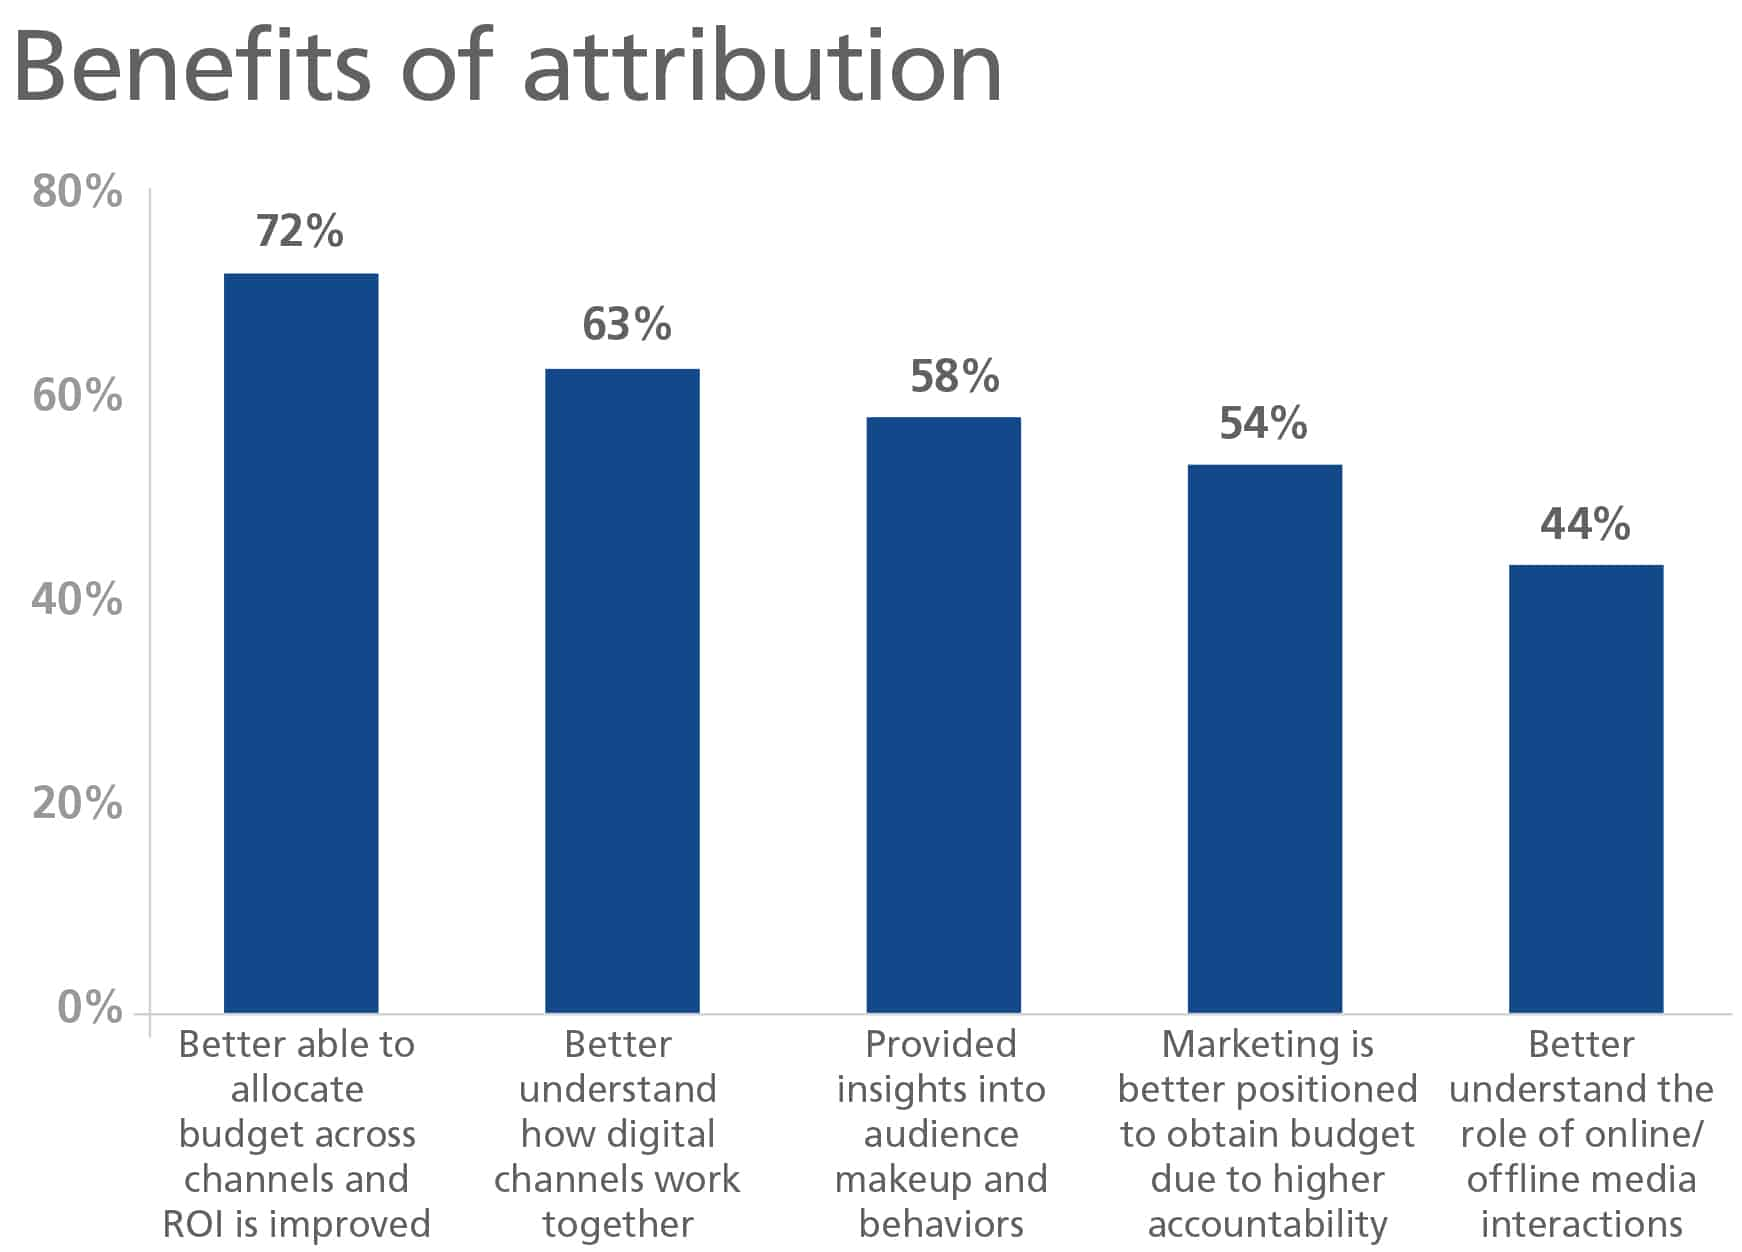 The top benefits according to marketers include being better able to allocate budget across channels and ROI is improved.